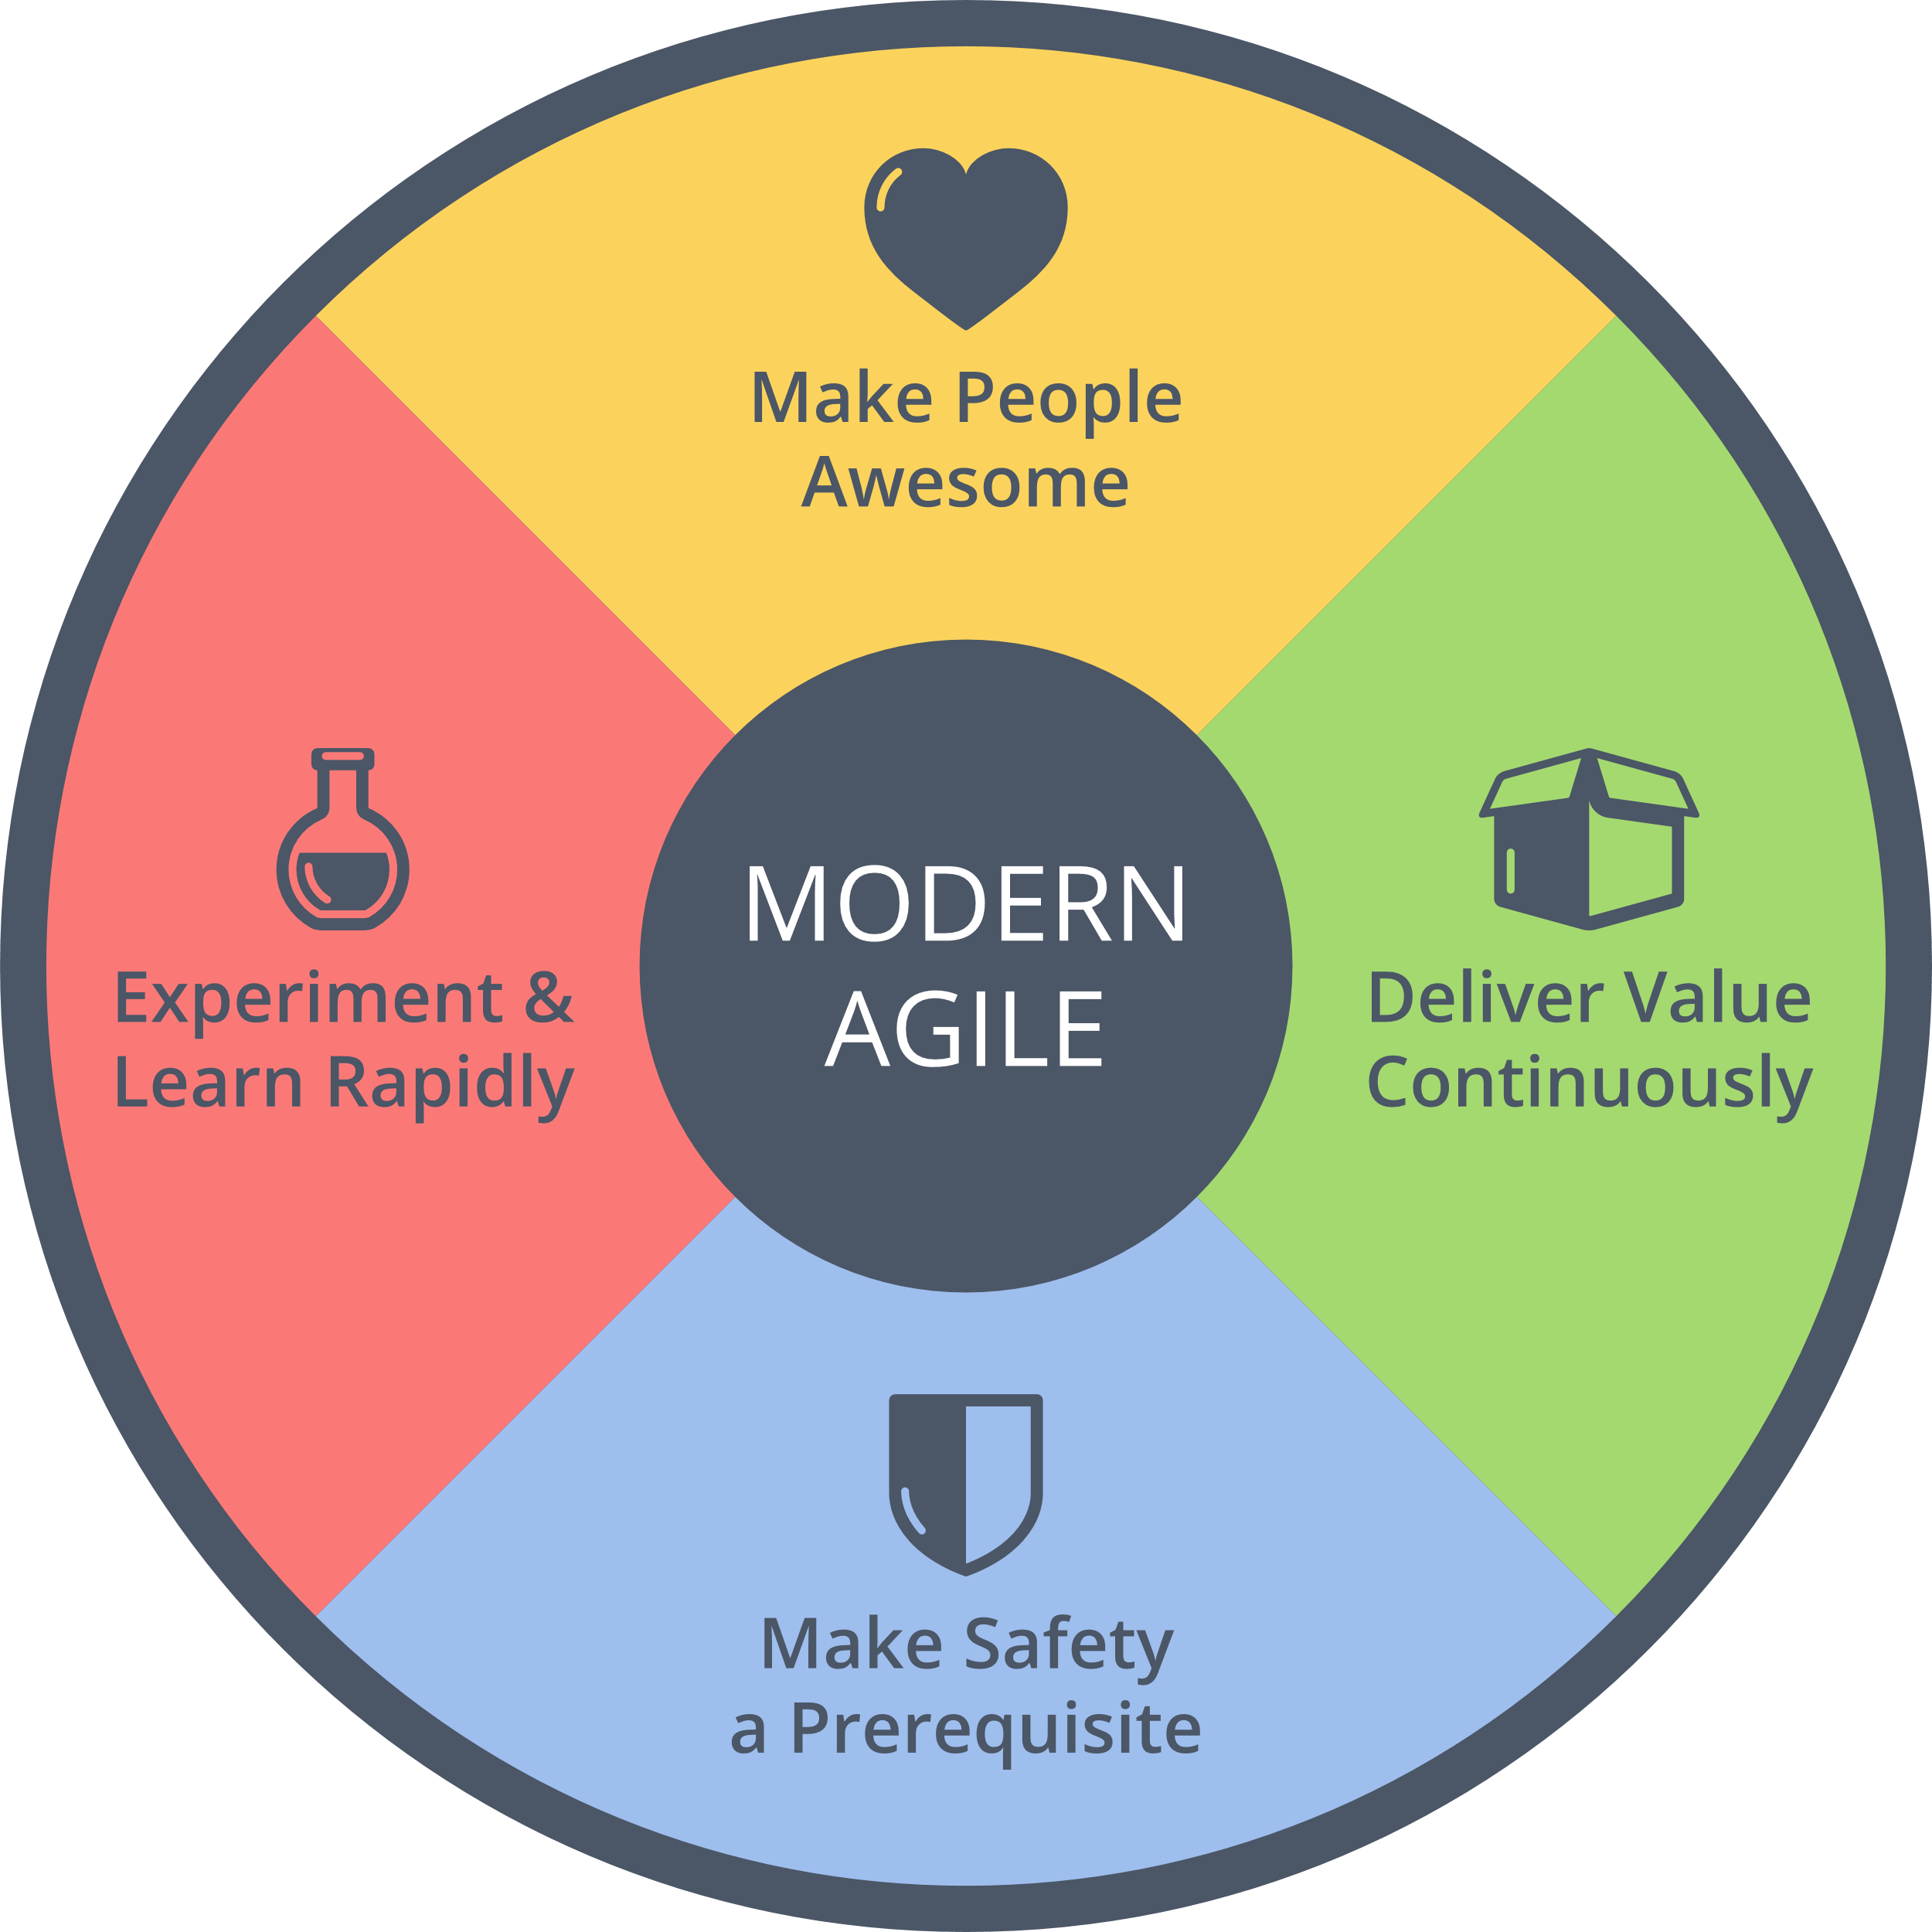 """Circle diagram with """"Modern Agile"""" in the middle and """"Make Safety a Prerequisite,"""" """"Experiment and Learn Rapidly, """"Deliver Value Continuously,"""" and """"Make People Awesome."""""""